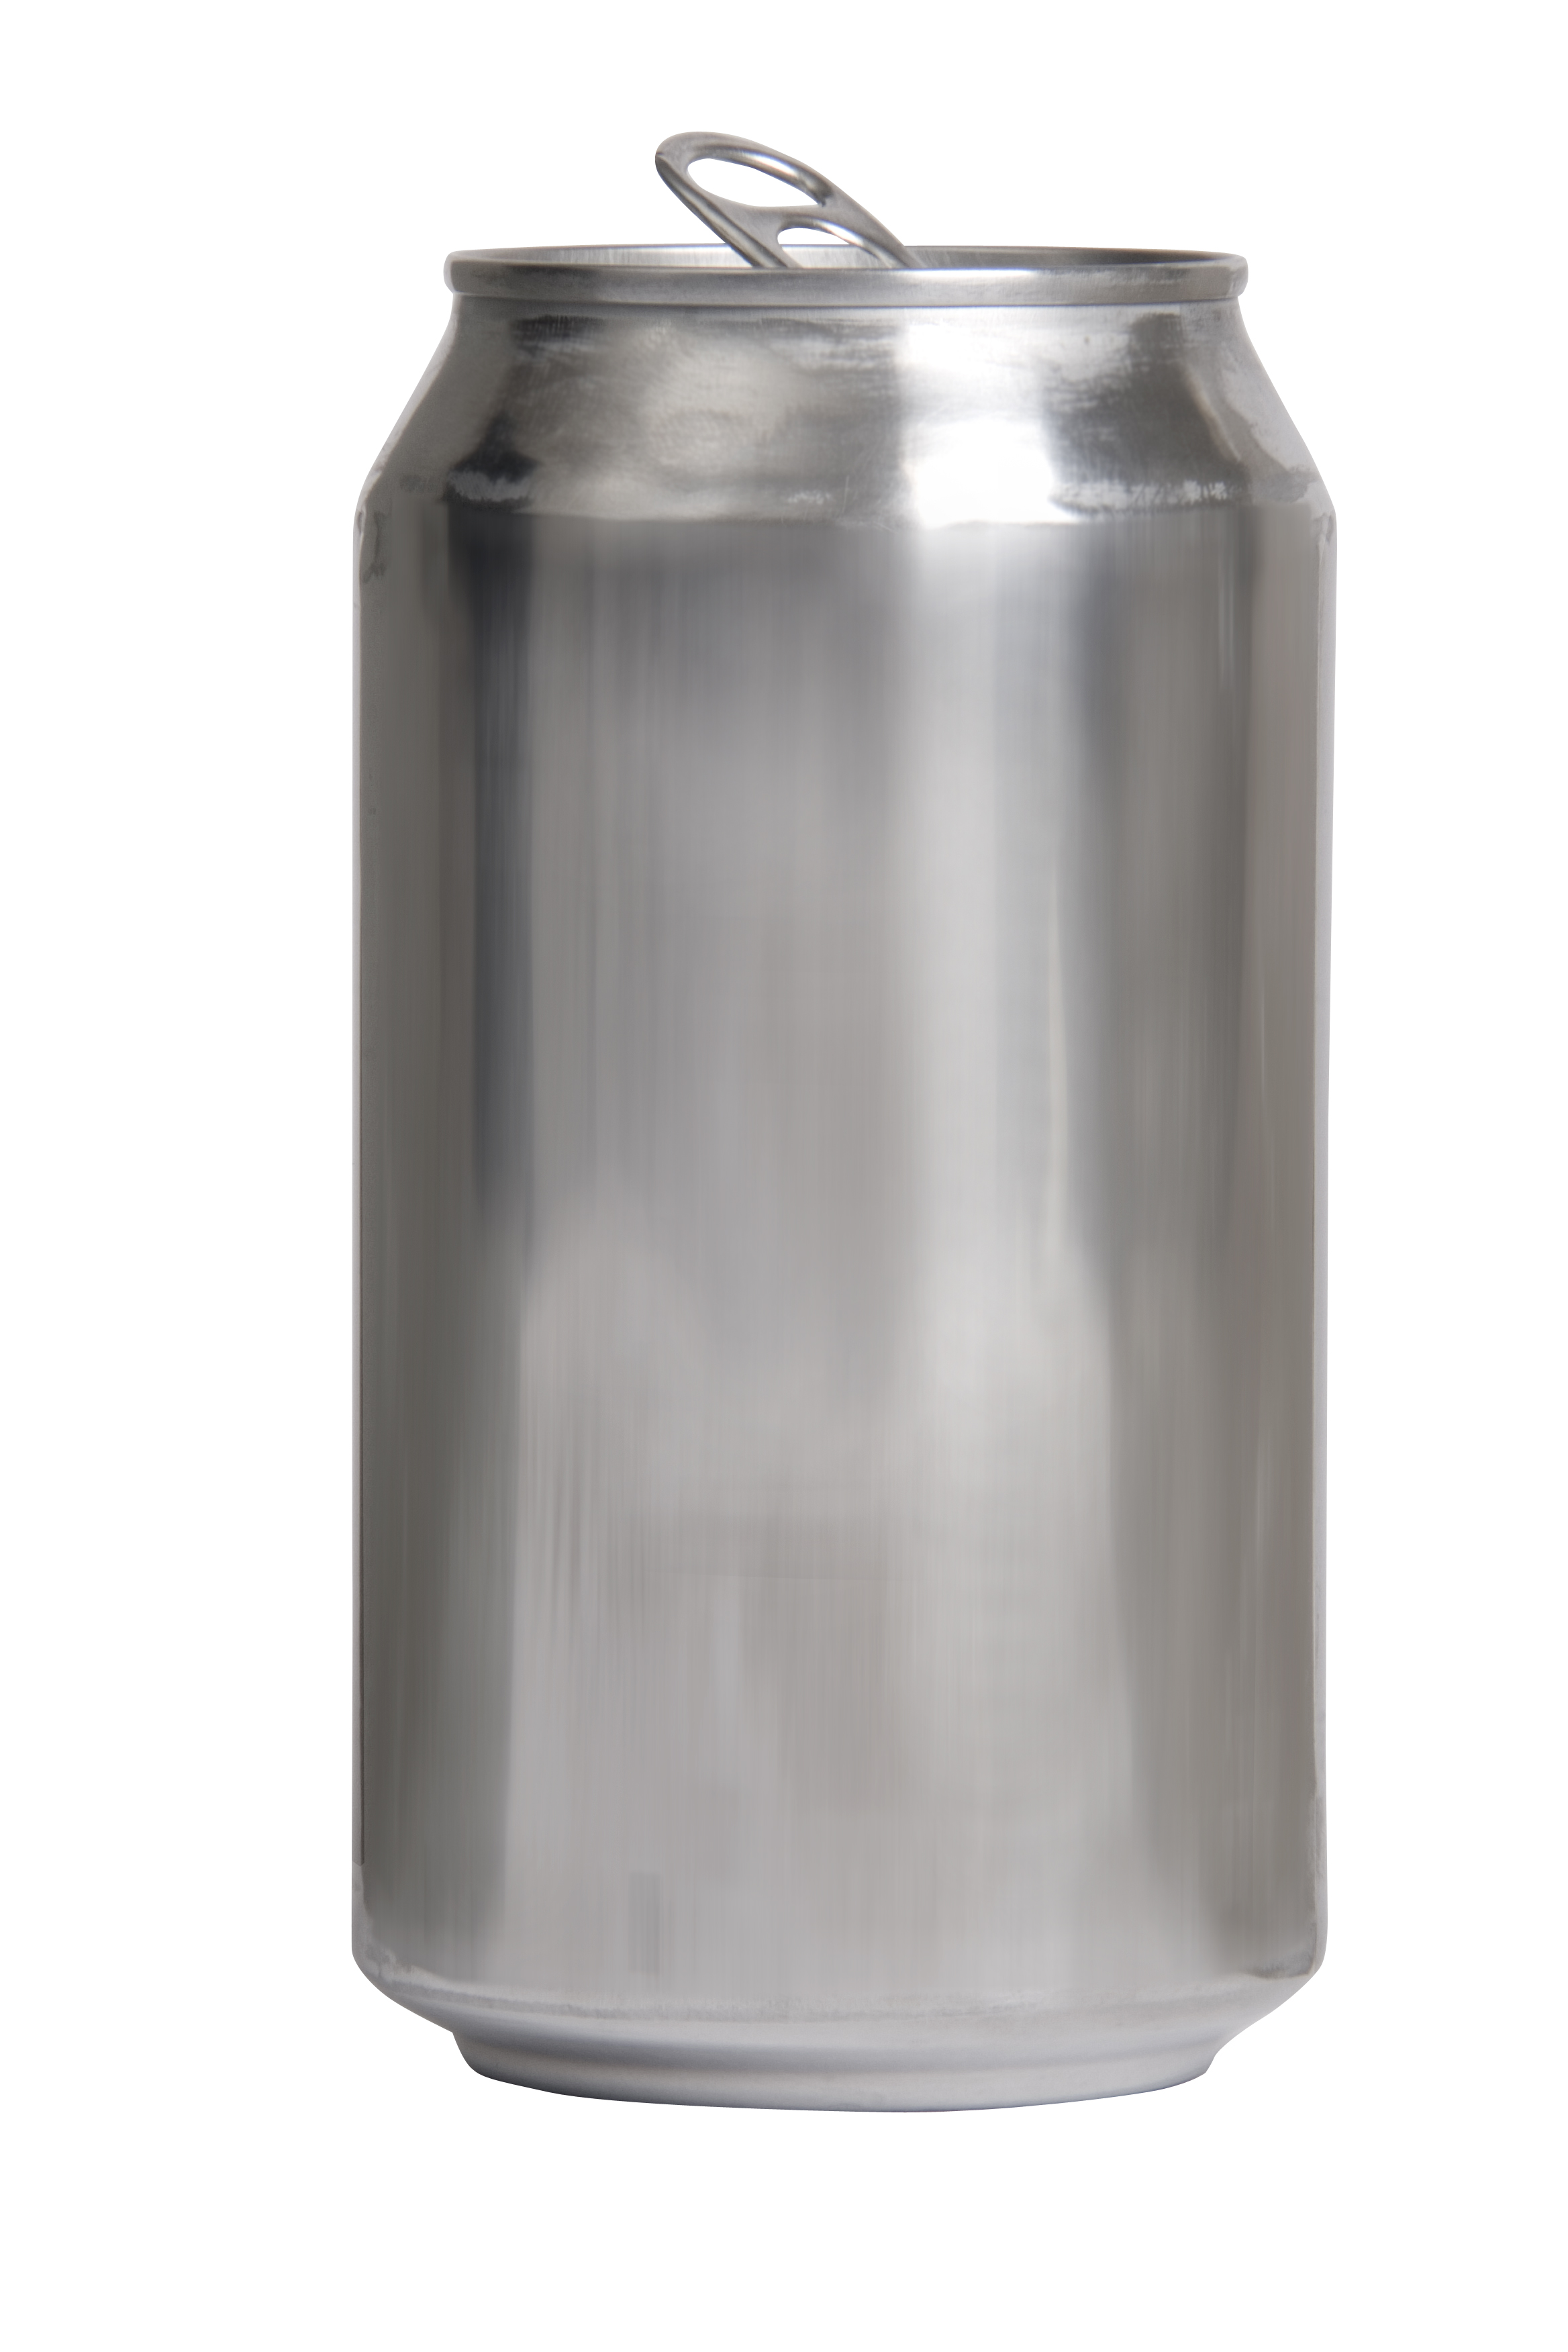 Opinions on Aluminum can